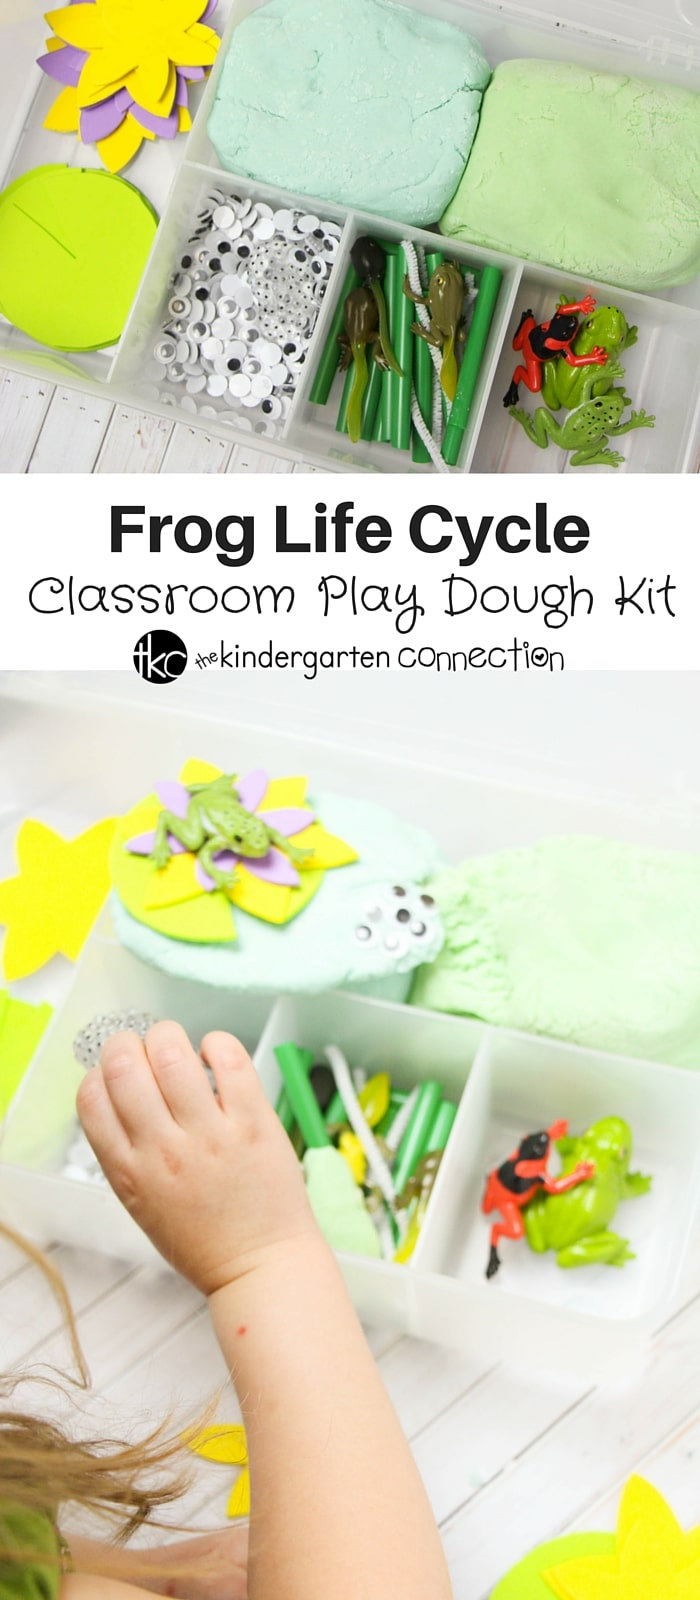 Frog Life Cycle Classroom Play Dough Kit - a perfect Spring-themed sensory play meets science. Teach kids all about the life cycle of a frog with this hands-on sensory experience